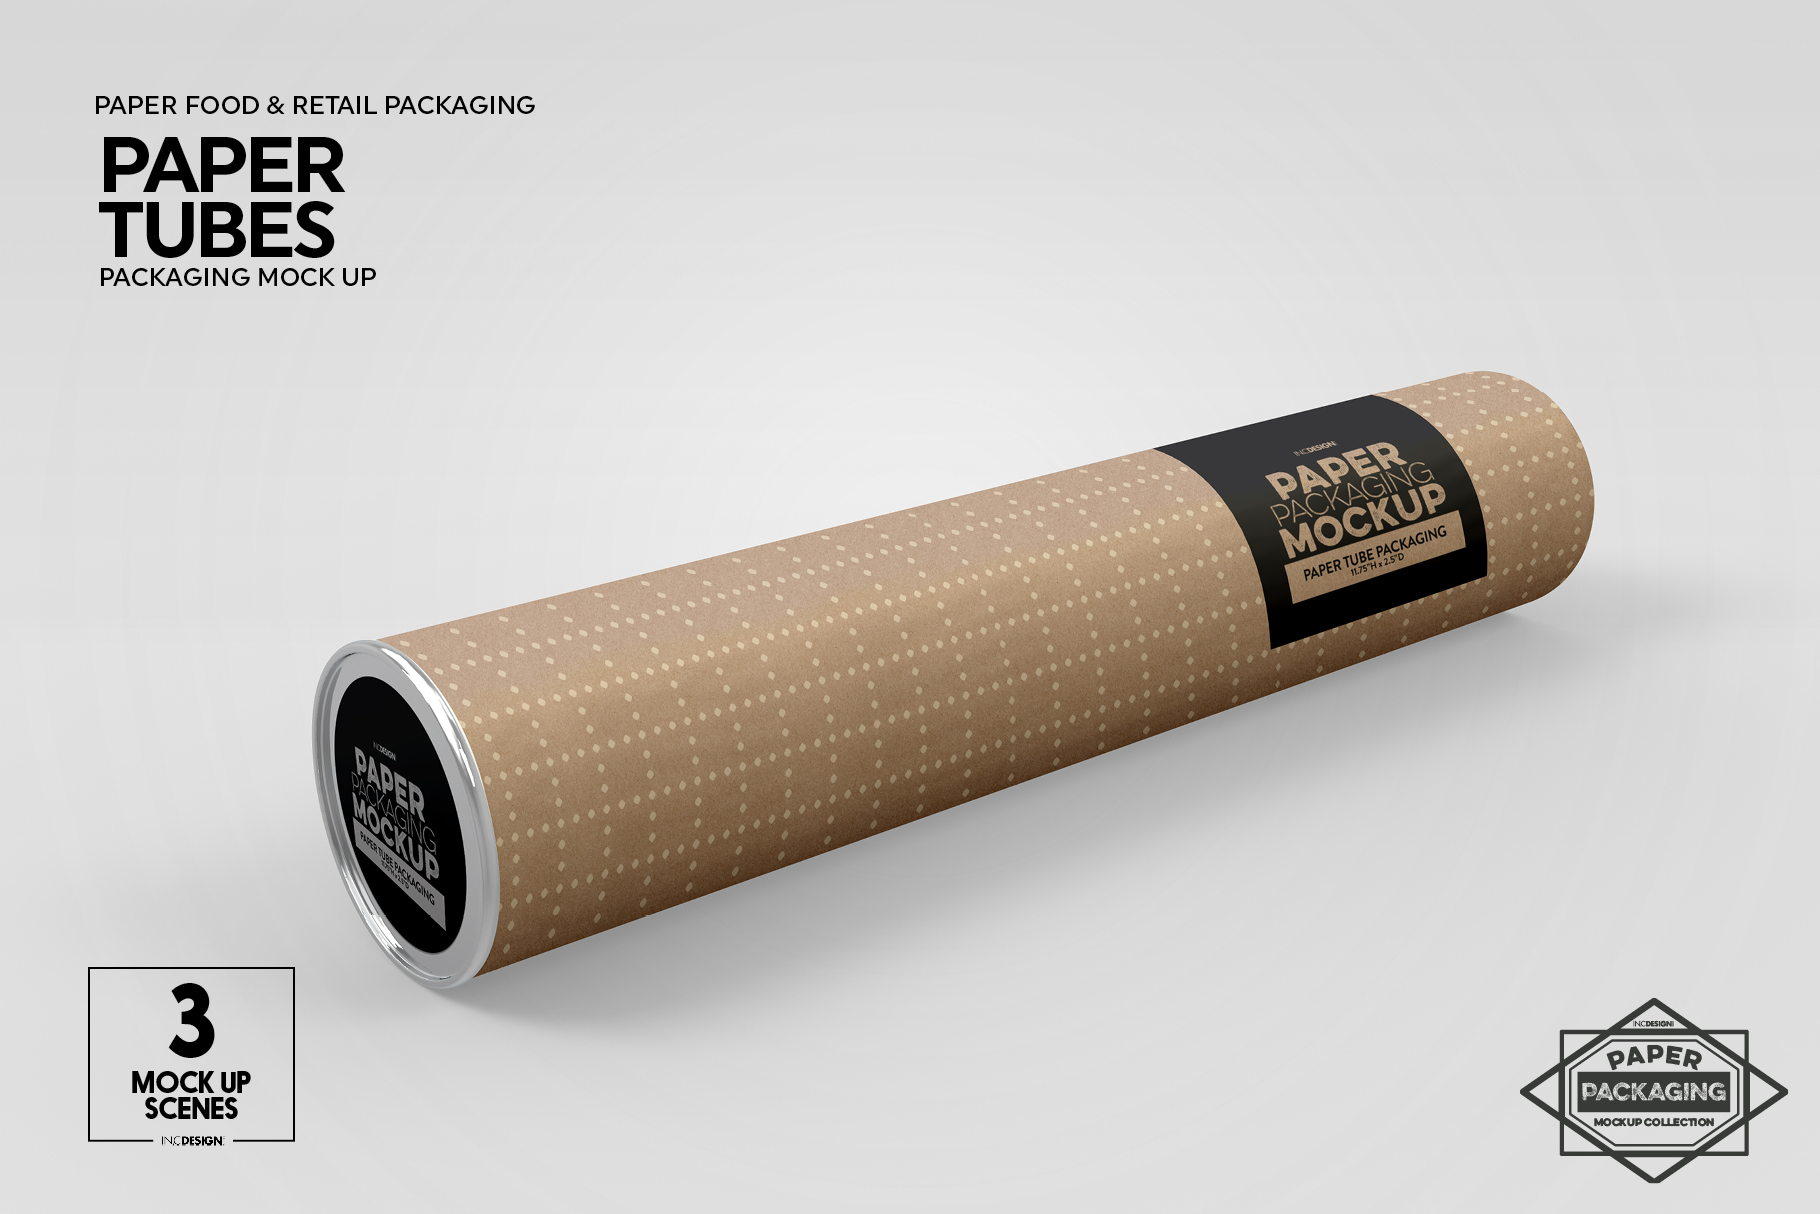 Paper Tube Packaging Mockup example image 7